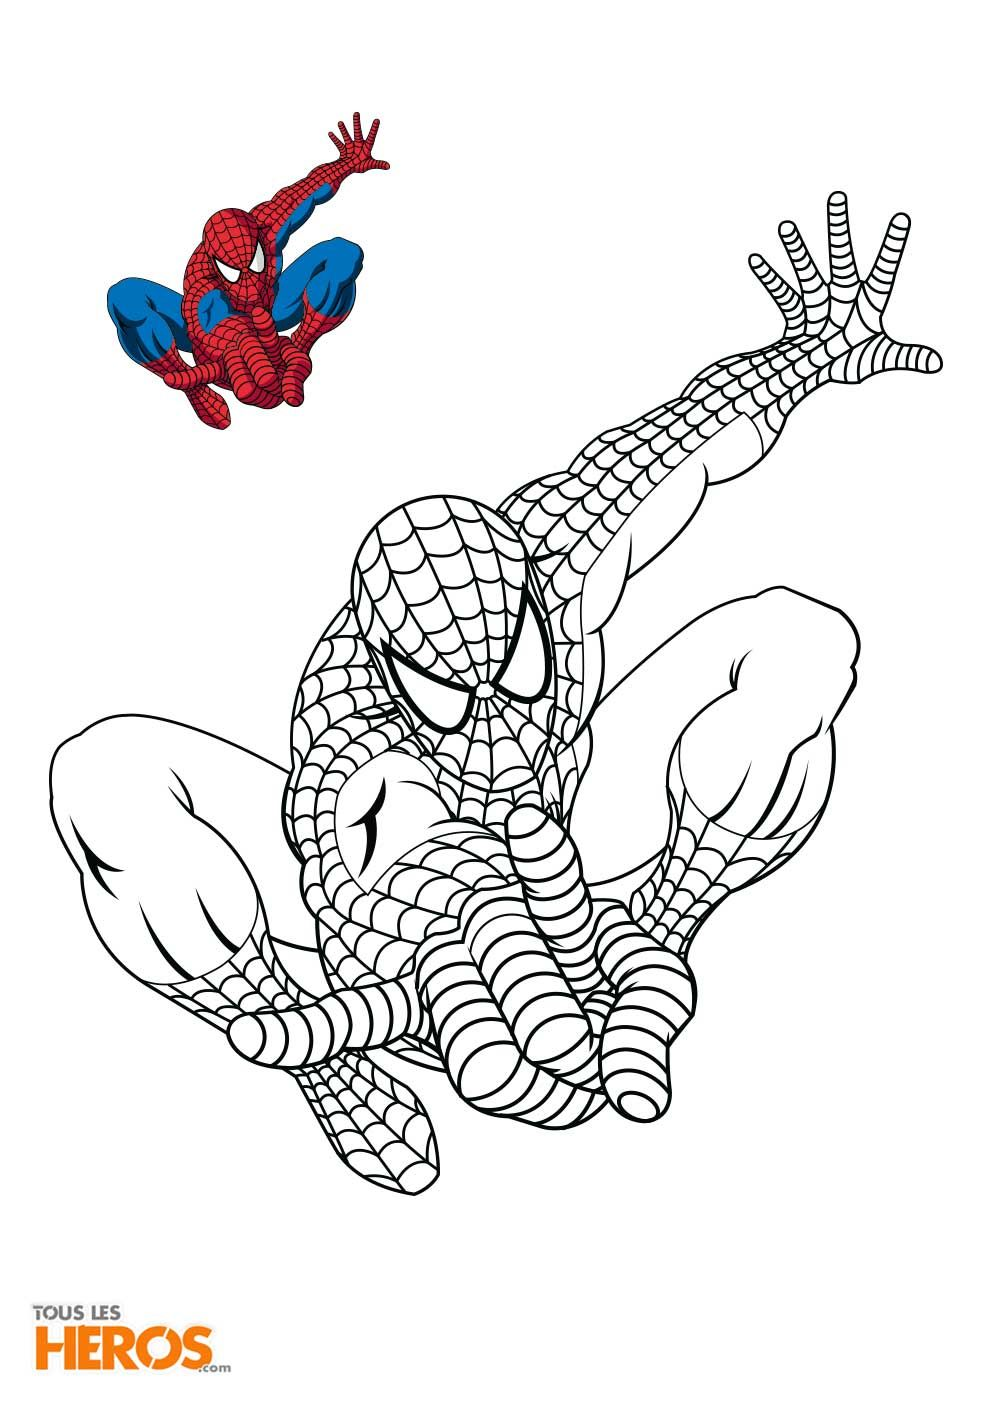 Coloriage spiderman en train de sauter coloriage pour enfants coloriage spiderman coloriage - Coloriage spiderman imprimer ...